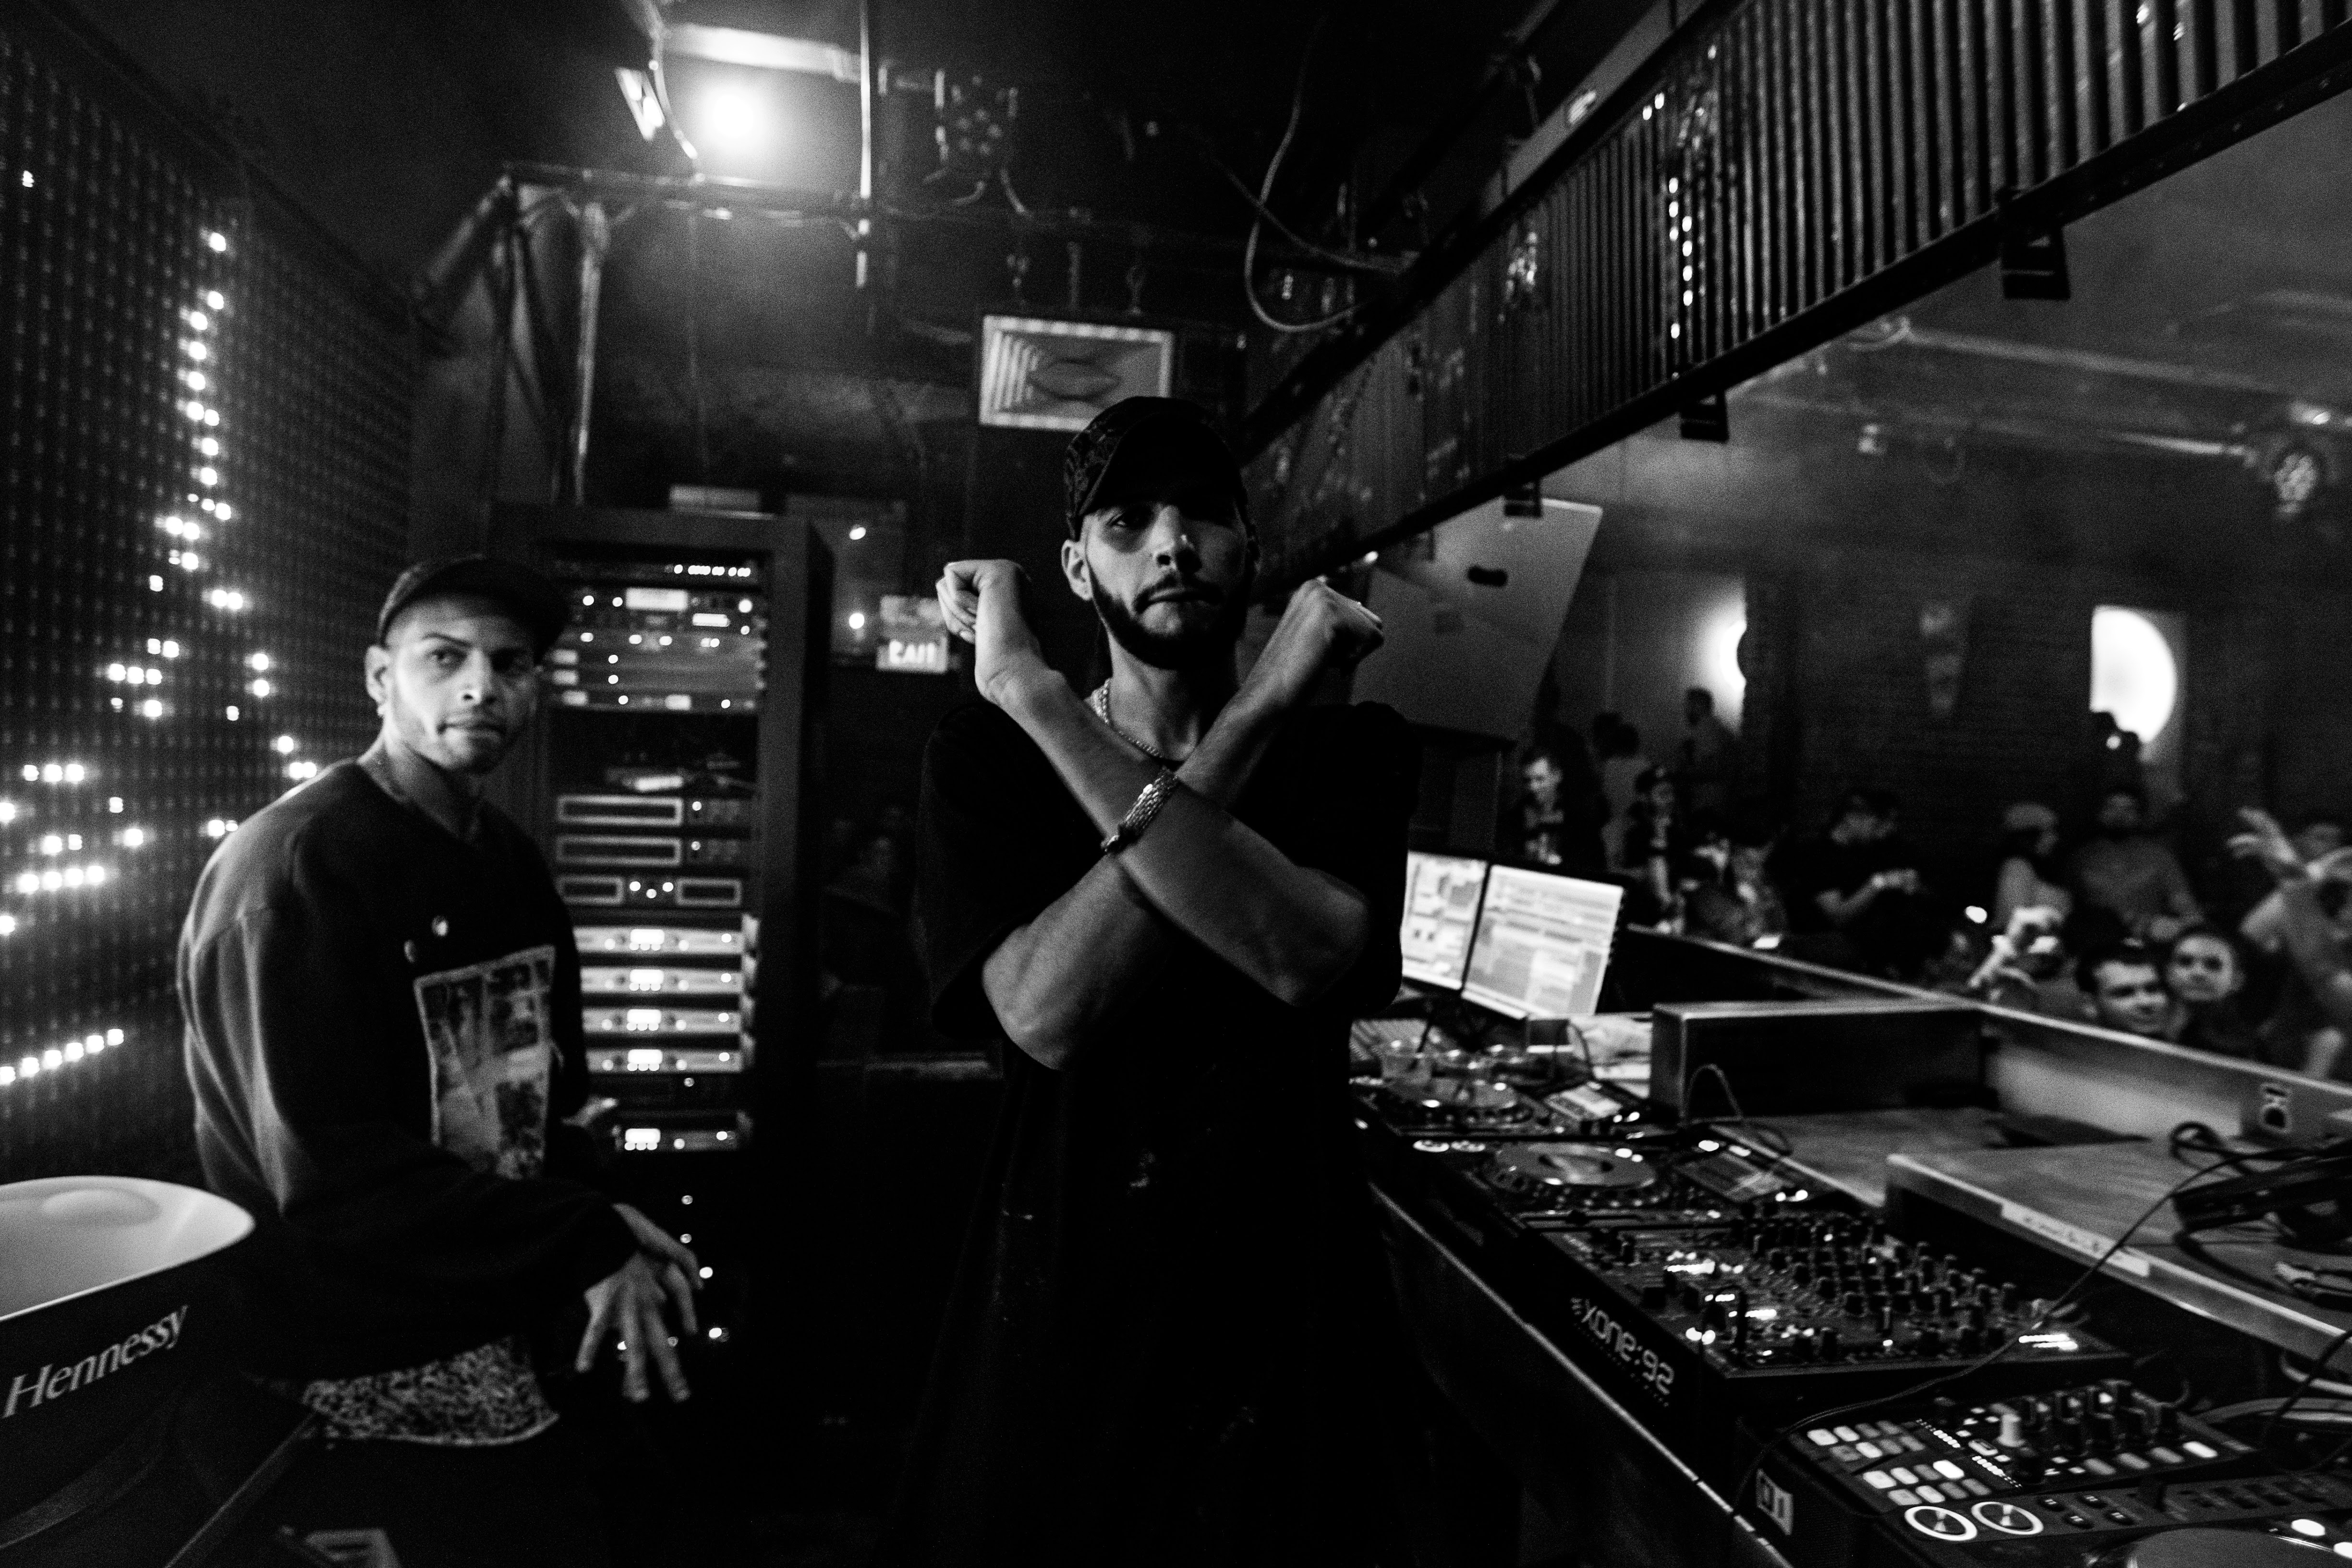 Concert review: The Martinez Brothers deadass shut down Club Vinyl